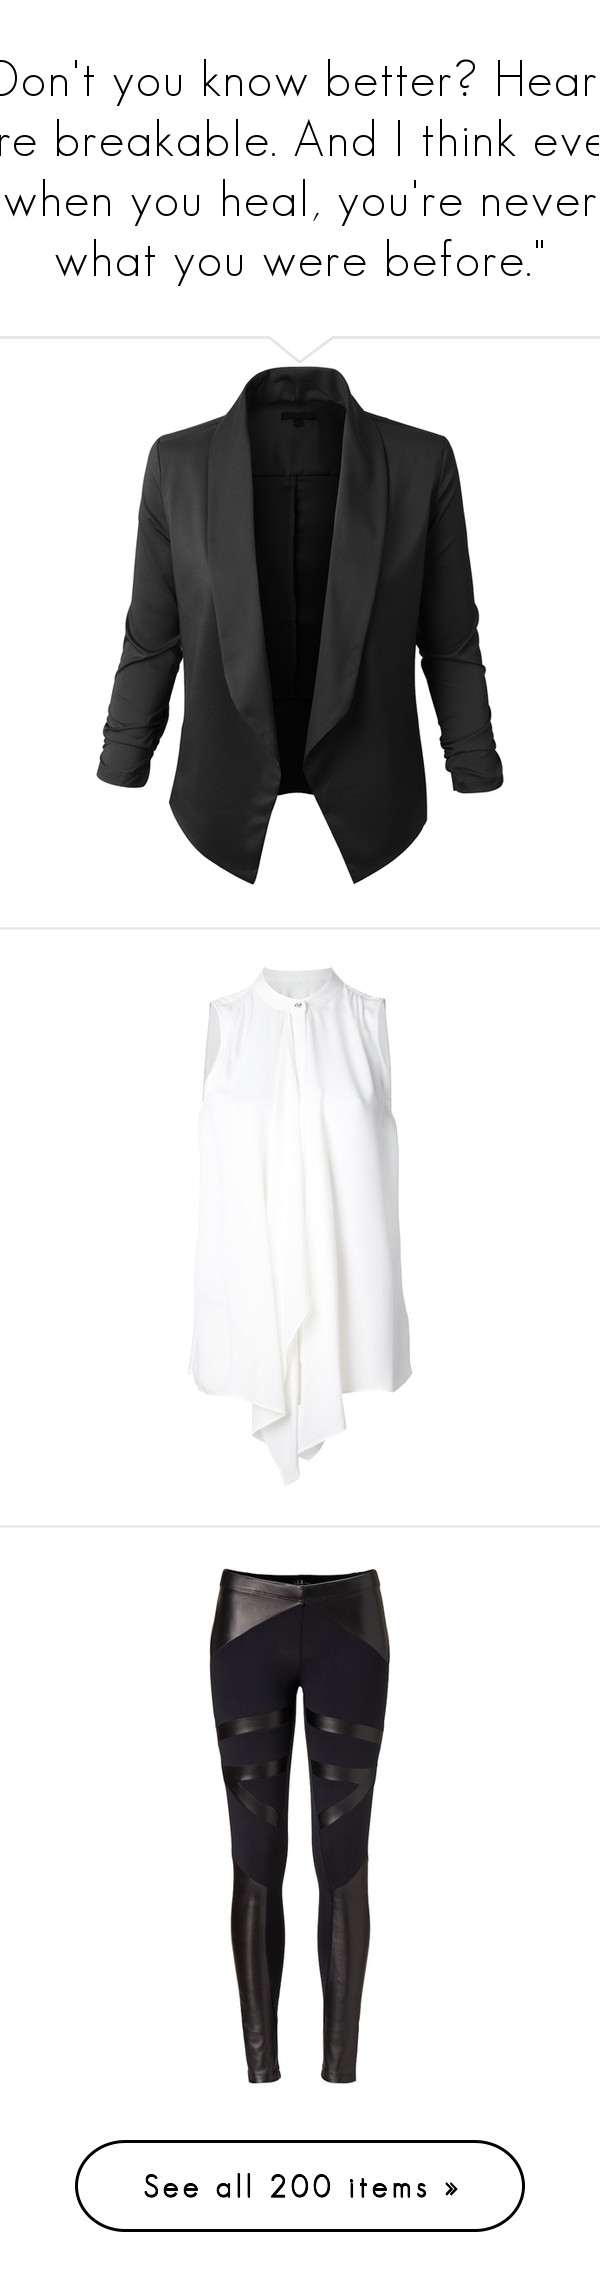 """""""Don't you know better? Hearts are breakable. And I think even when you heal, you're never what you were before."""" by foreverisallthatineed ❤ liked on Polyvore featuring outerwear, jackets, blazers, tops, lightweight jacket, lightweight blazer, light weight jacket, tuxedo blazer, tux jacket and blouses"""